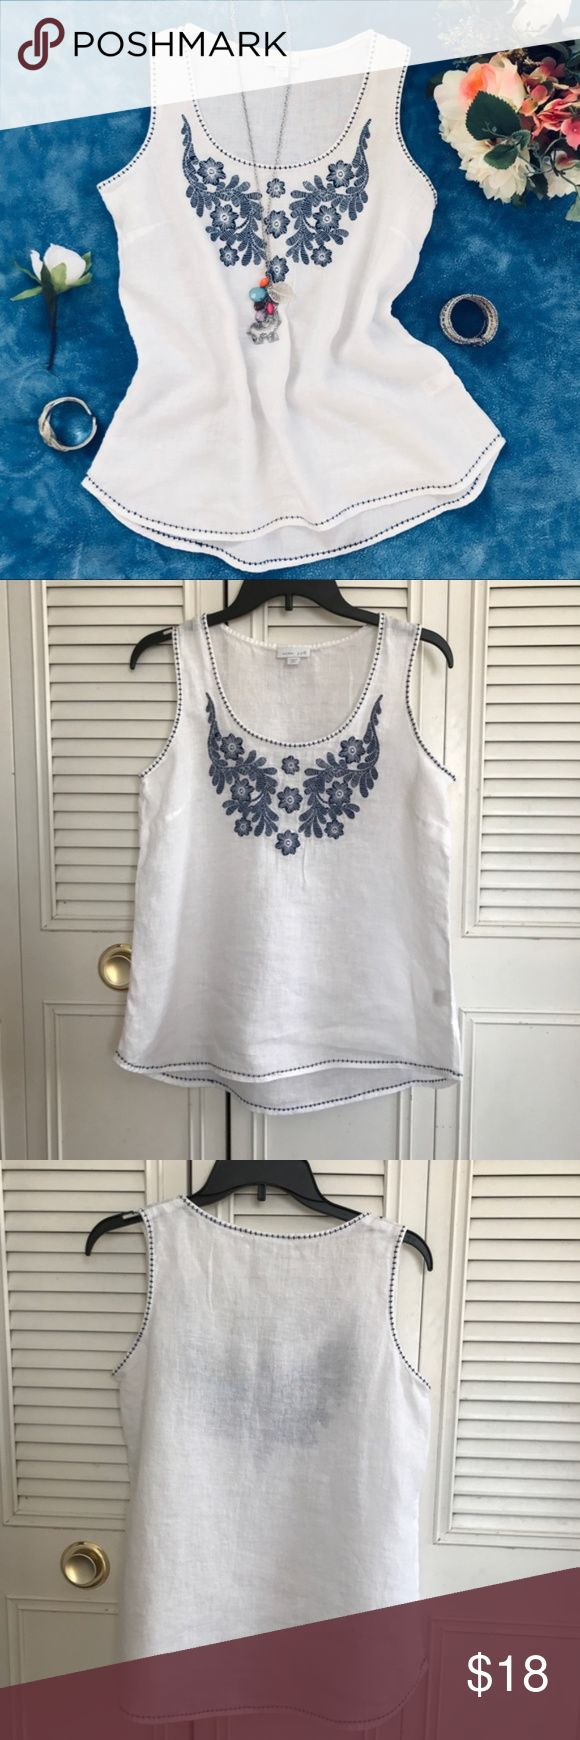 """J. Jill Women Sleeveless Embroider White Top This women's sleeveless top is come in a white color. It feature a beautiful embroider navy blue flowers around the front chest and navy blue line around the bottom, sleeve, and neckline. See picture. Good condition.  Material: 100% Linen exclusive of decoration.  Top to bottom: 24""""  Chest: 18.5""""  Measurement are base on item lay flat on the floor. J. Jill Tops Blouses"""